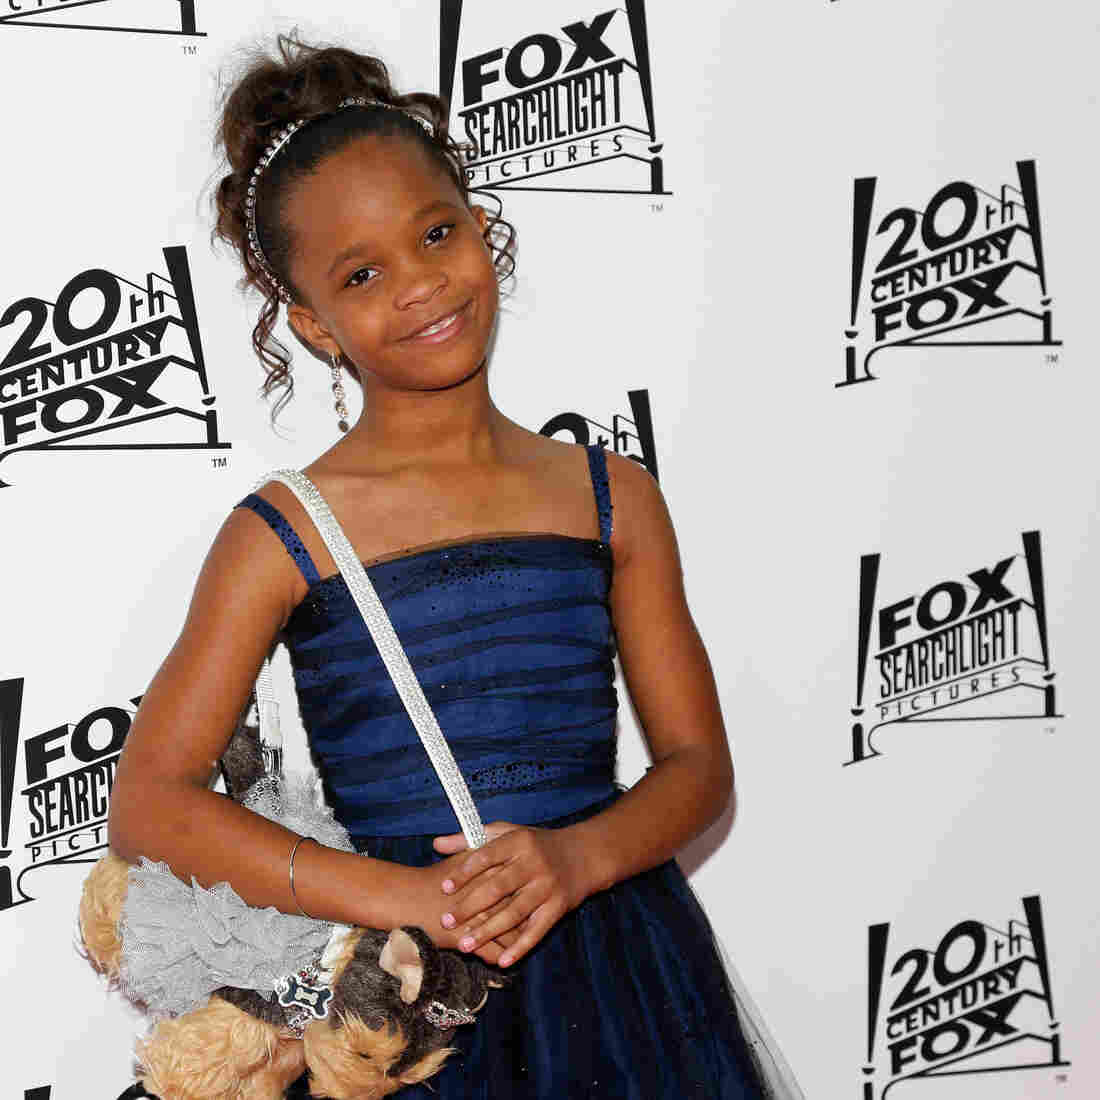 'The Onion' Apologizes For Offensive Tweet About 9-Year-Old Quvenzhane Wallis